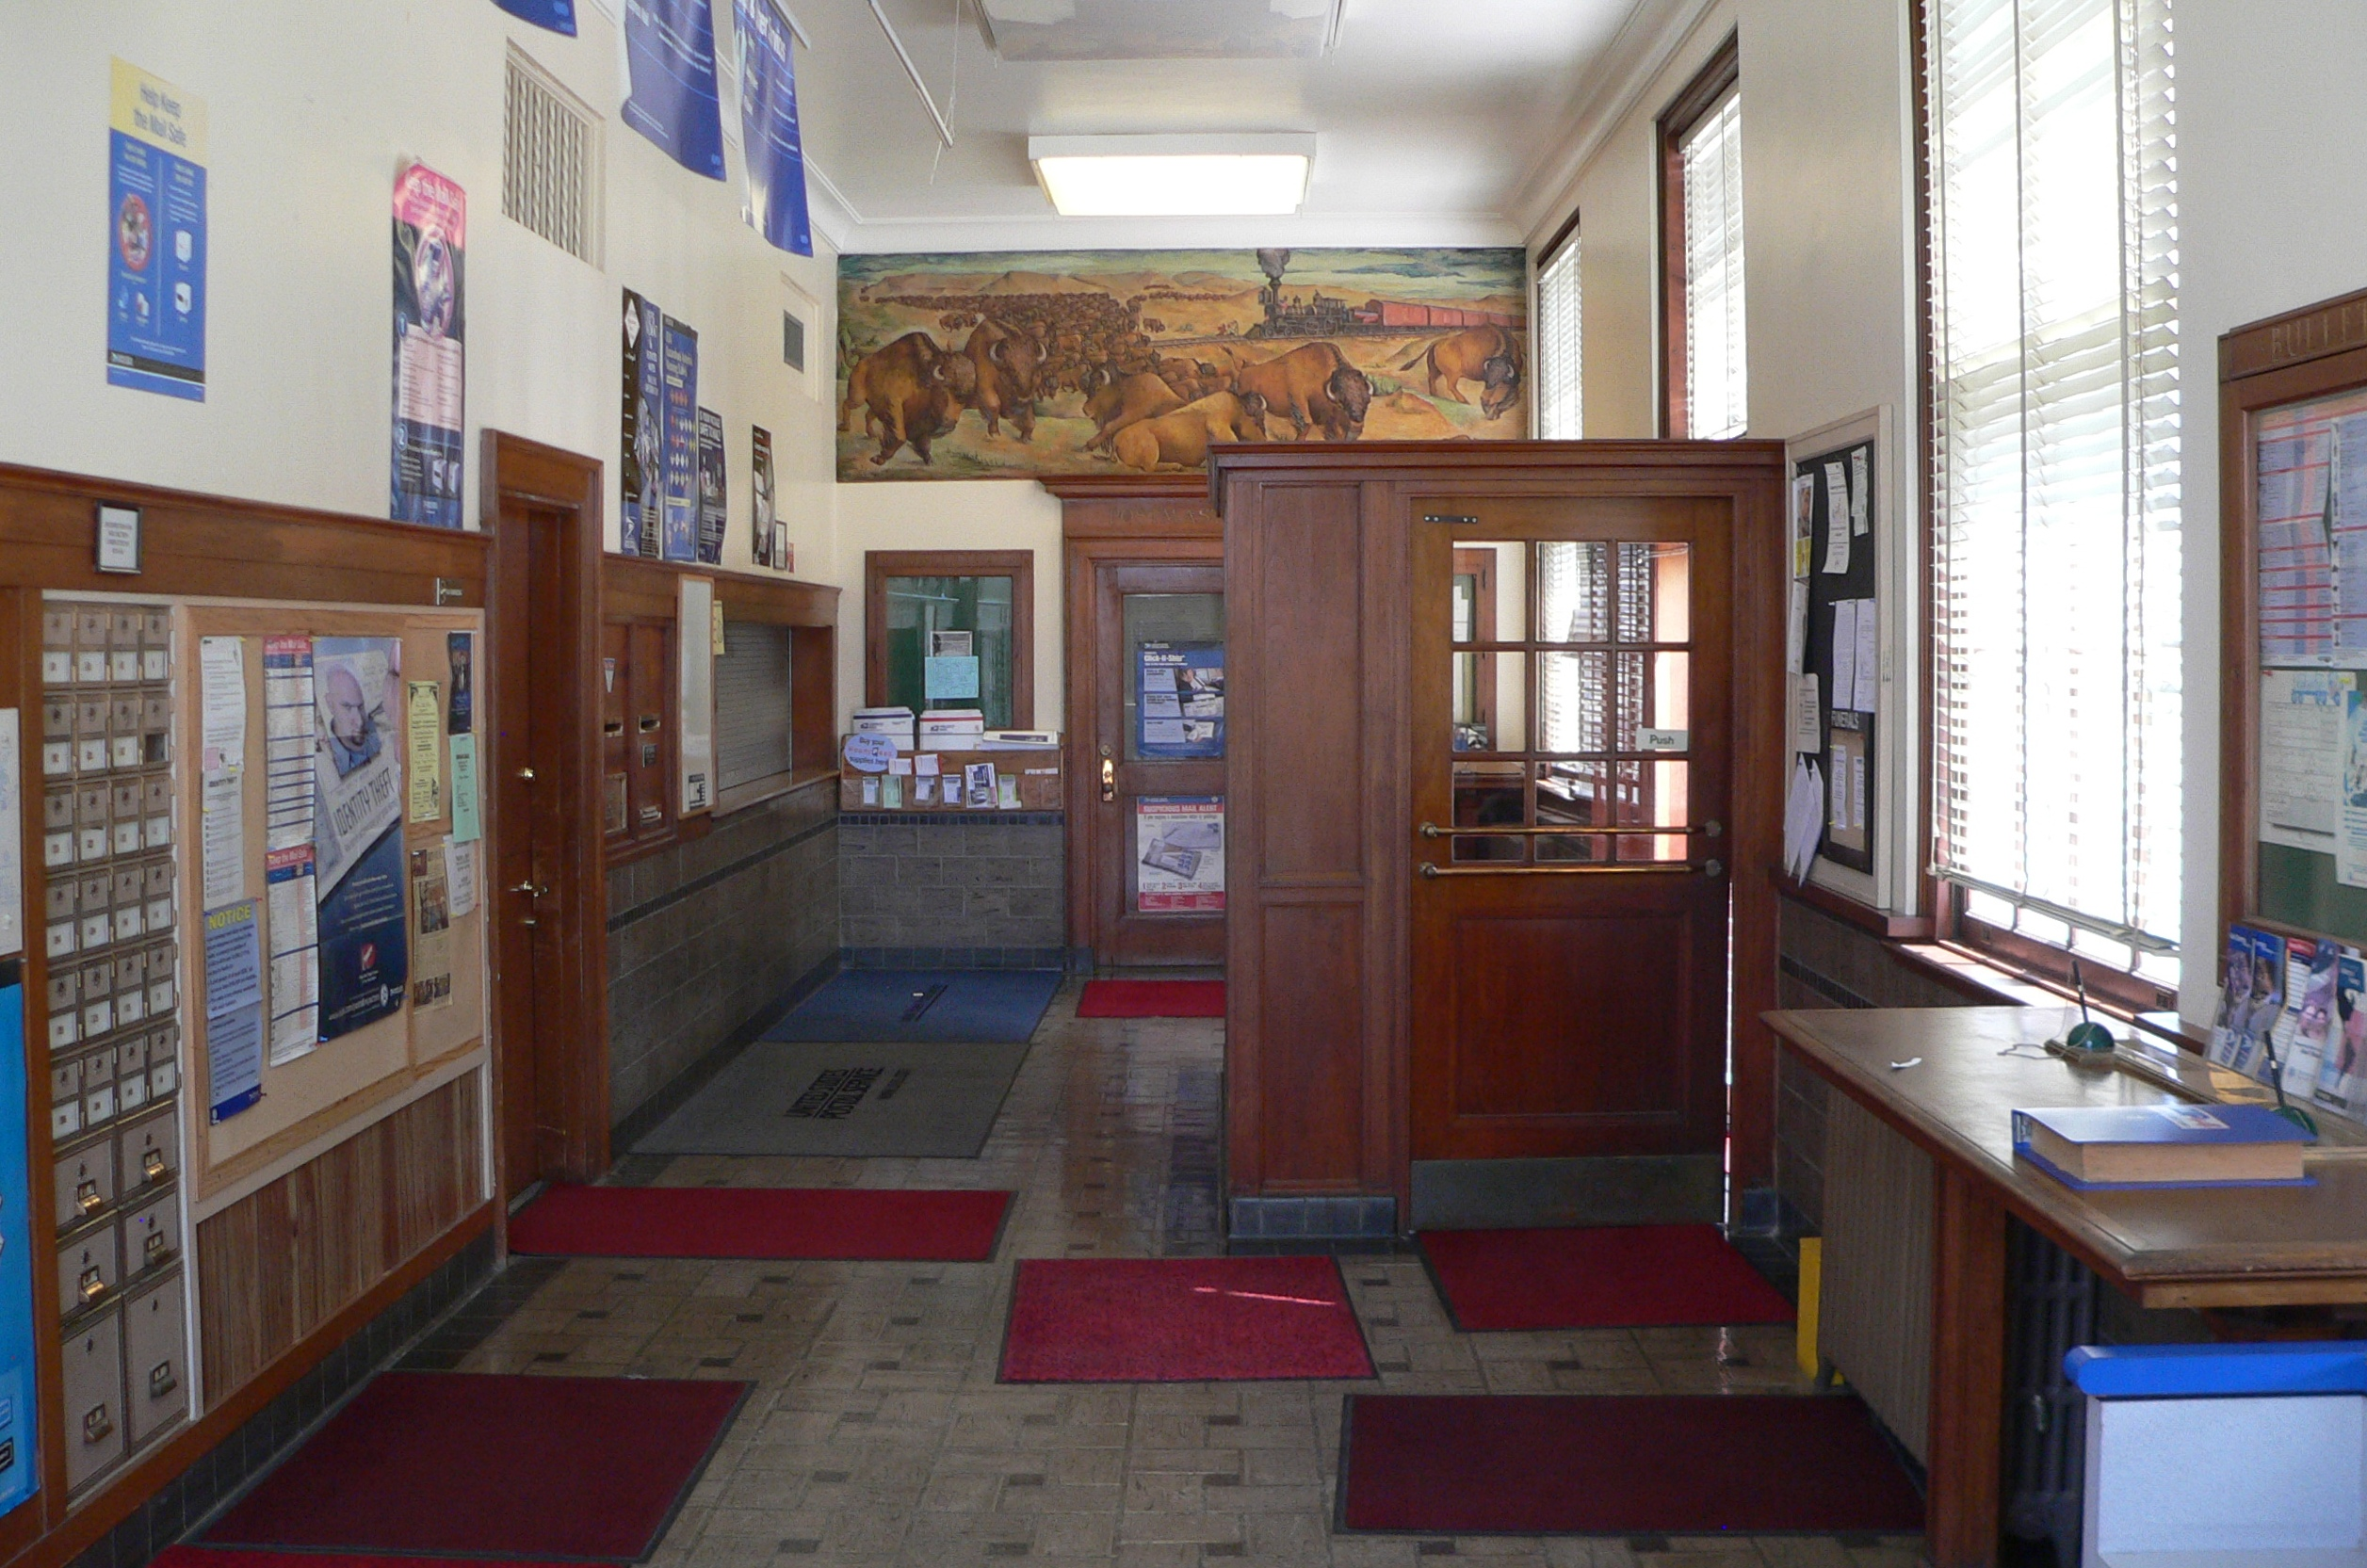 File hebron nebraska post office interior jpg wikimedia commons - Interior images ...